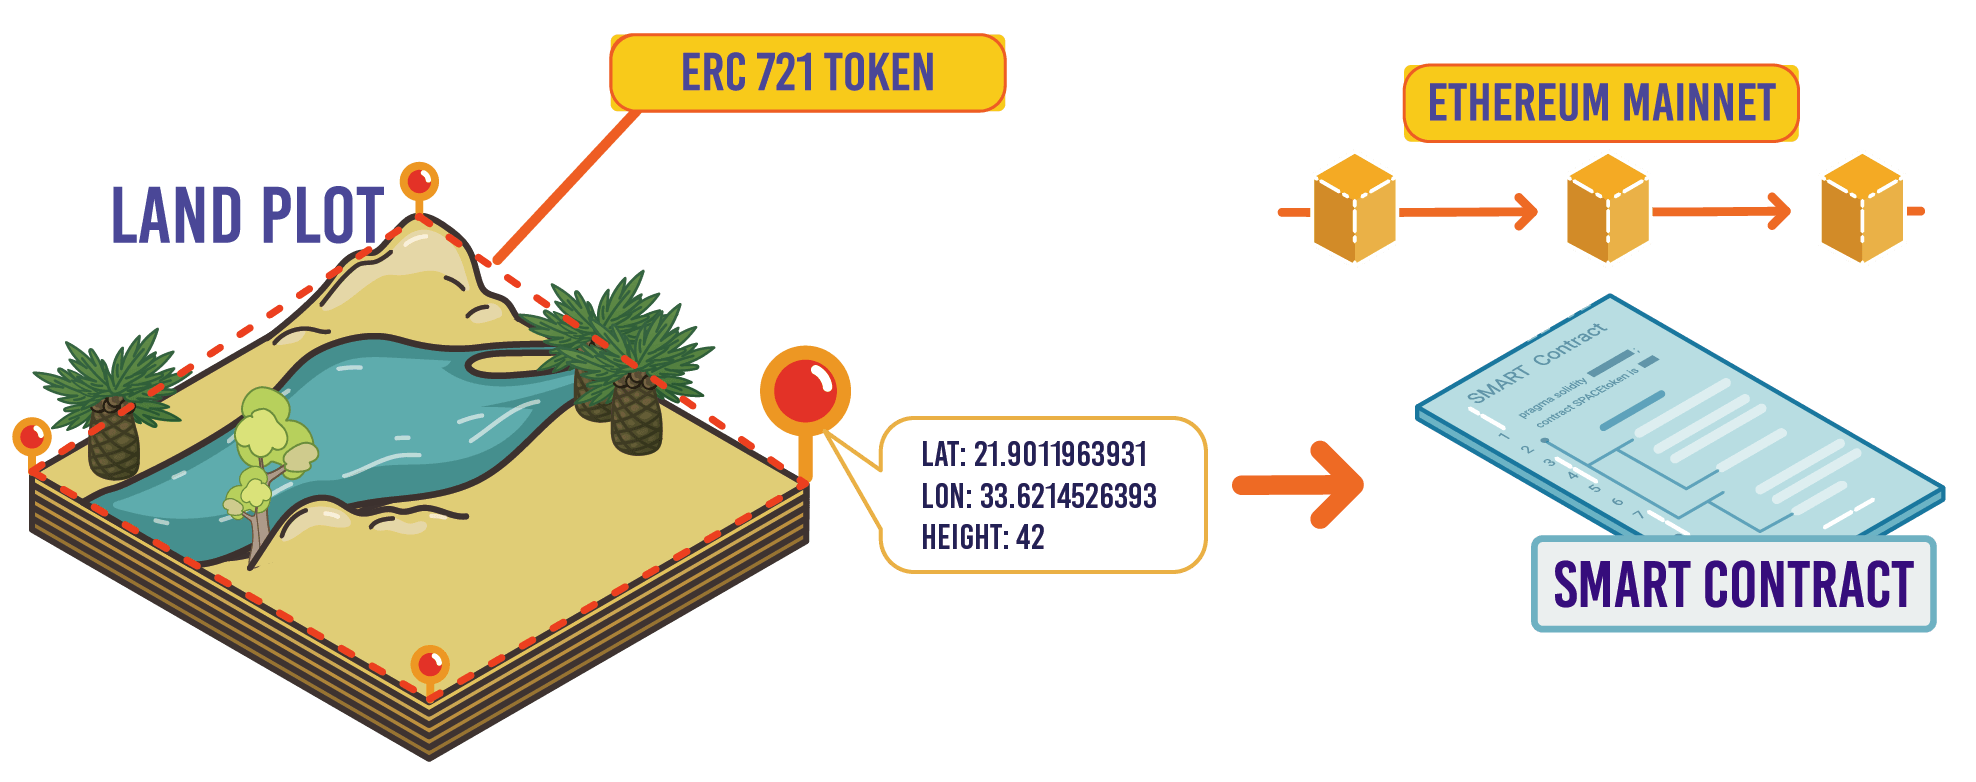 Accurate land plots coordinates in smart contract